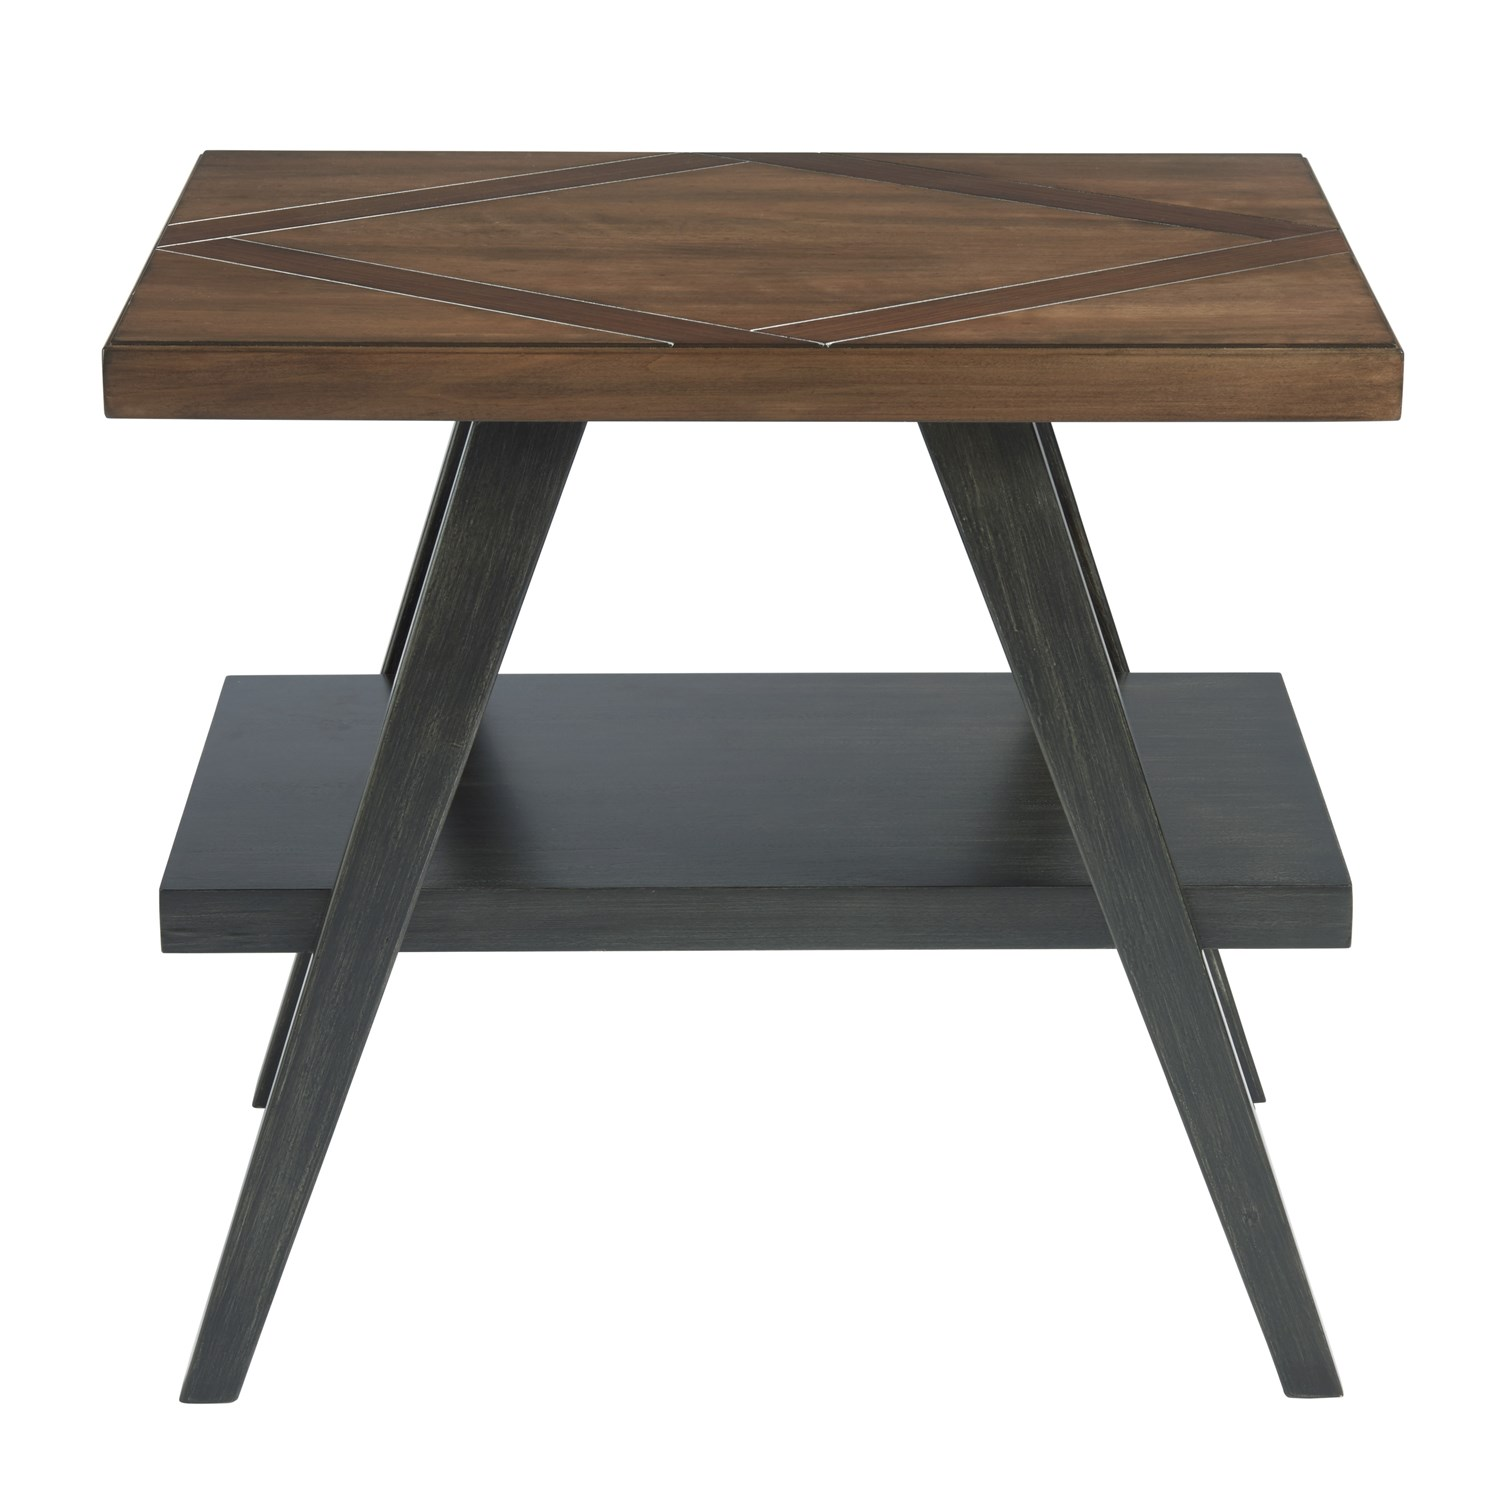 universal furniture curated chandler end table mango tango white tables pallet desk plans glass base coffee cooktop oven nordstrom mid century dining broyhill illuminated cabinet